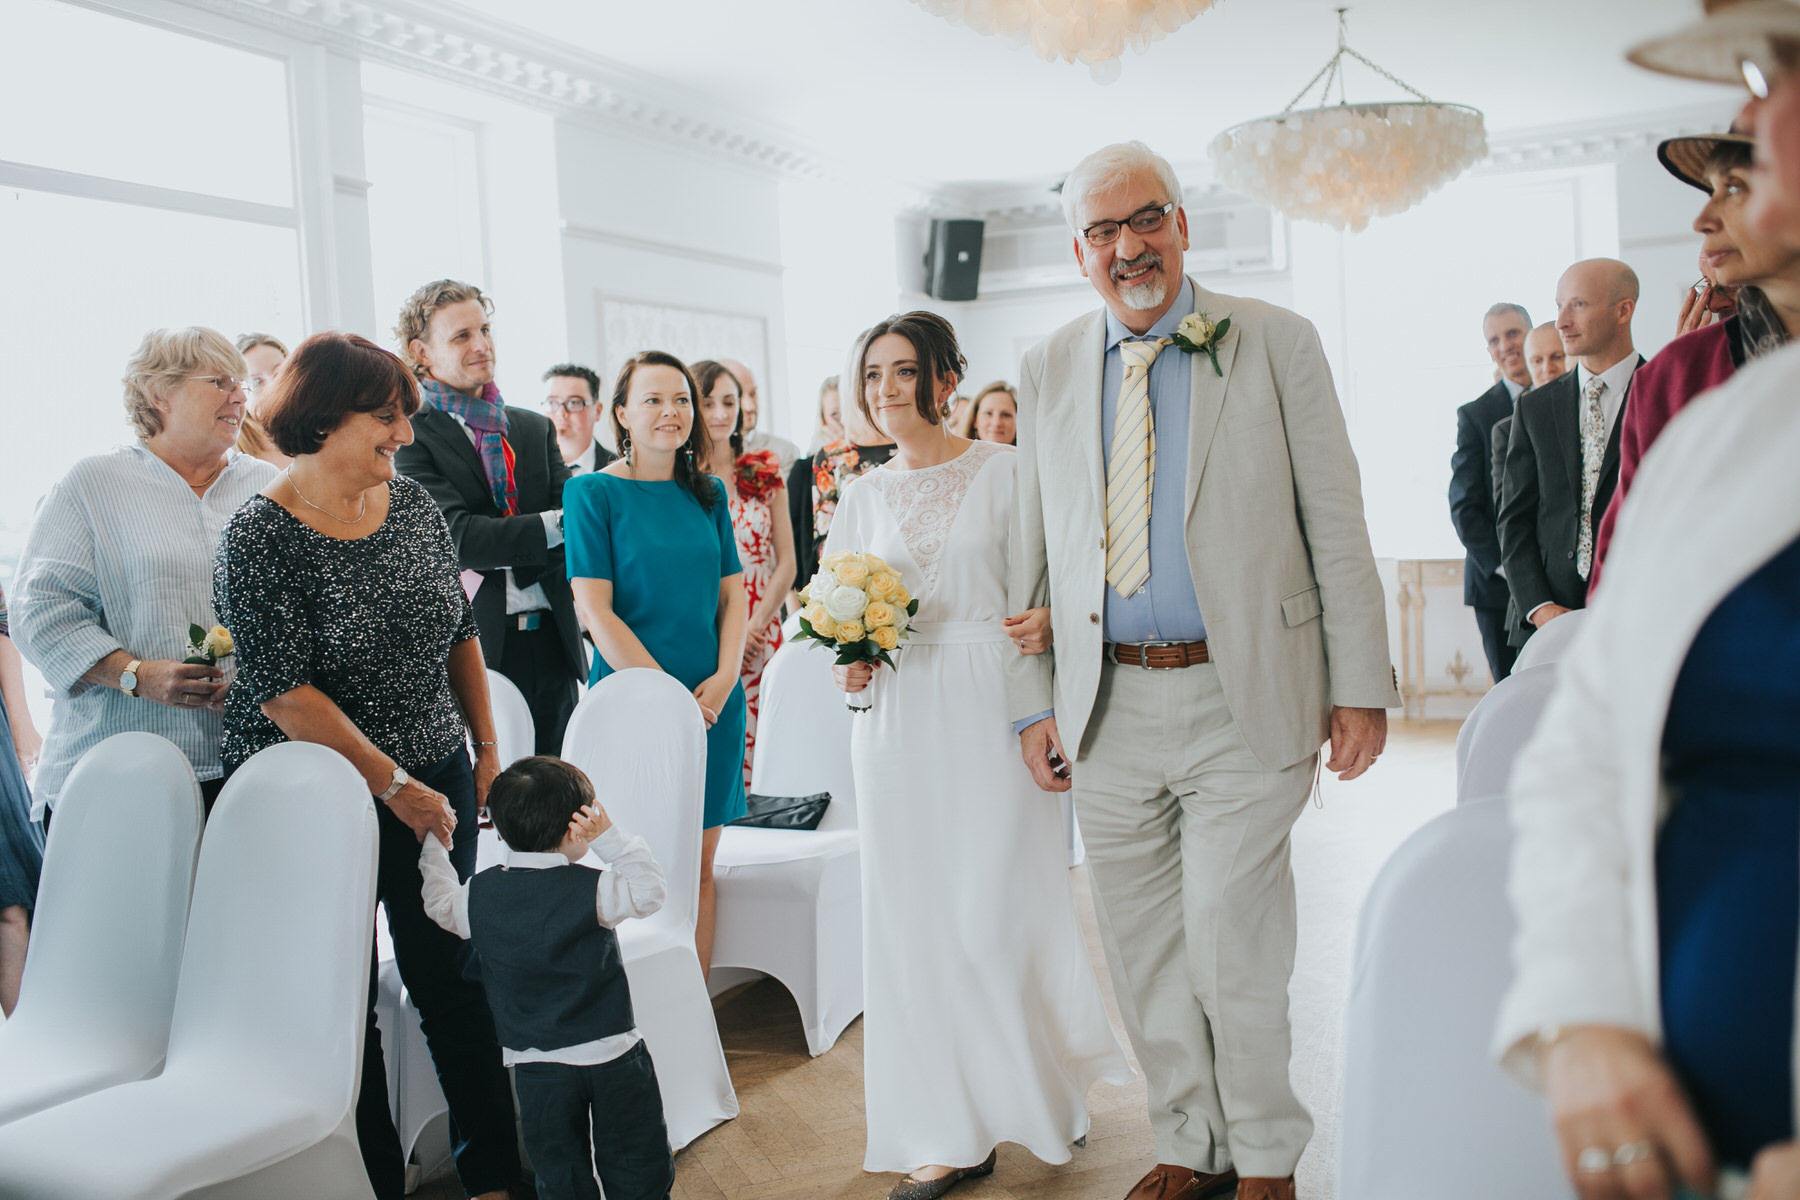 87 bride walking down aisle with father Belair House wedding ceremony.jpg